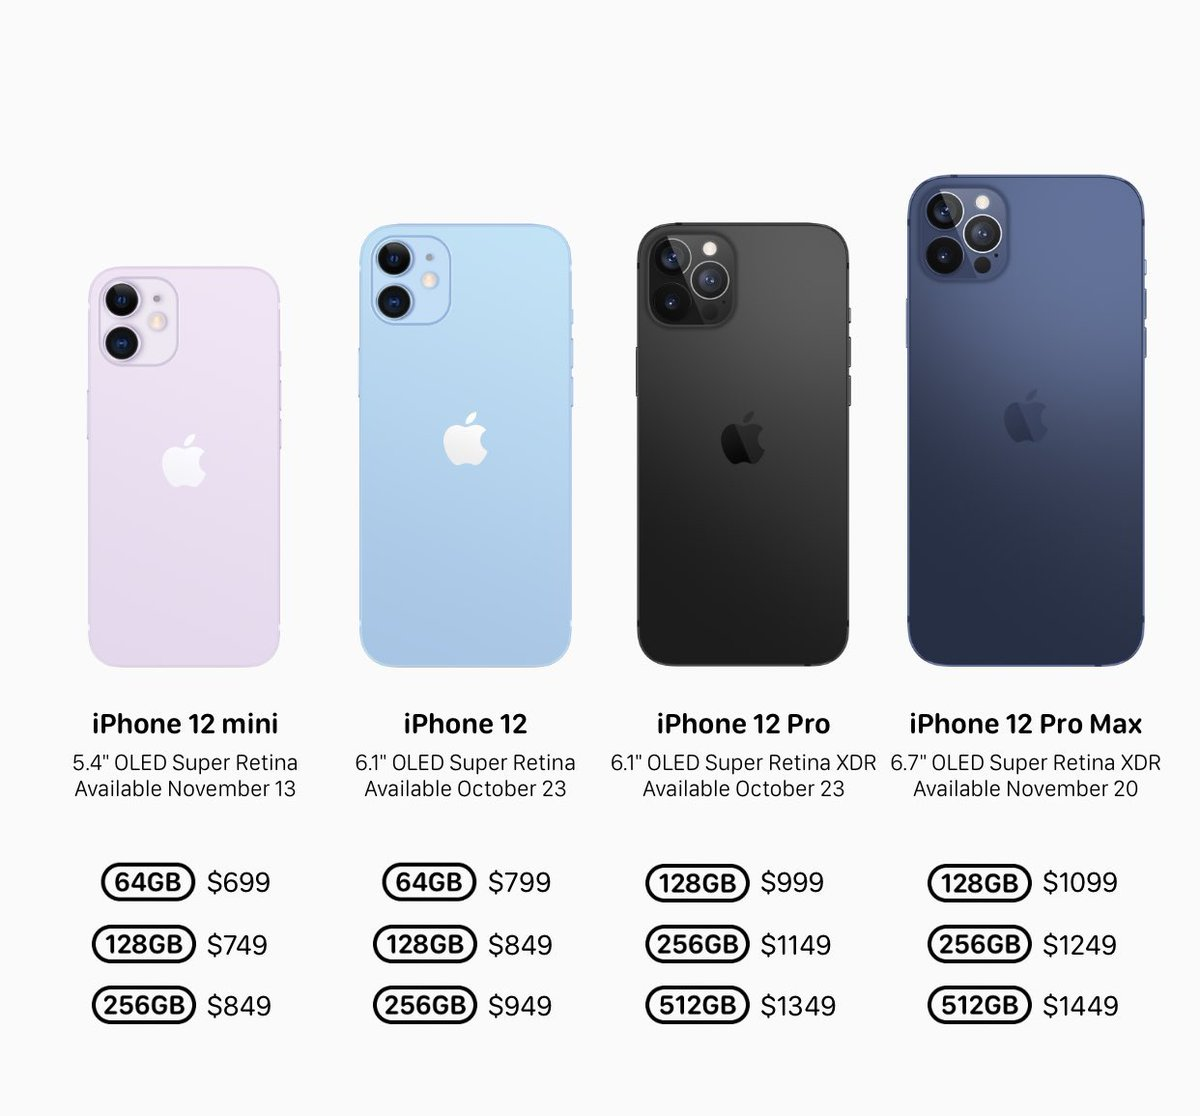 Prices Of The New iPhone 12 - 2021/2022